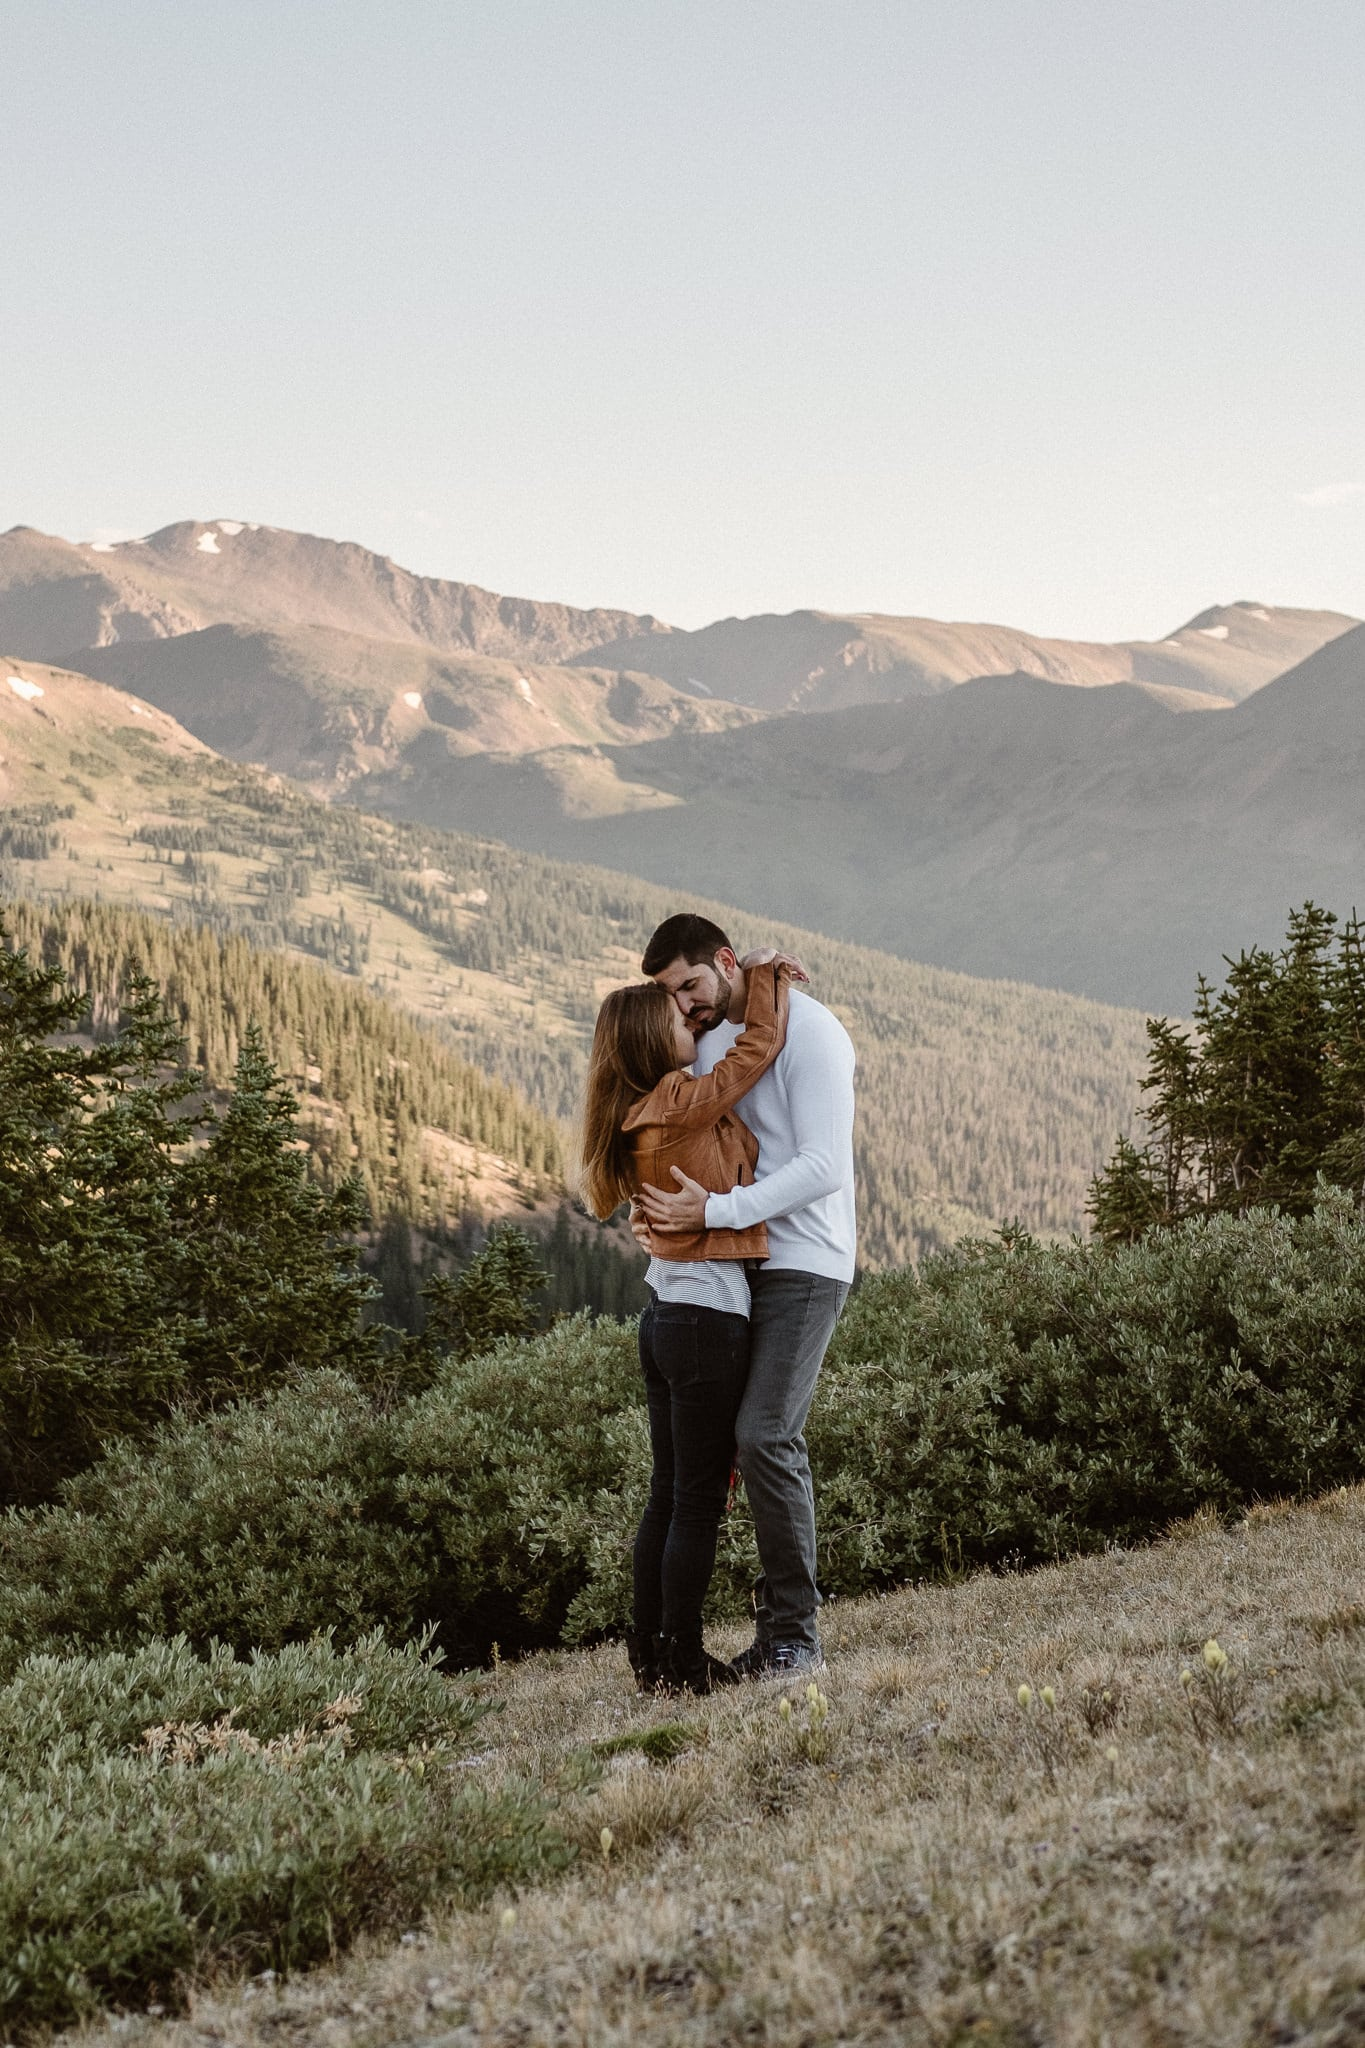 Colorado adventure engagement photography, Loveland Pass engagement session, Summit County wedding photographer